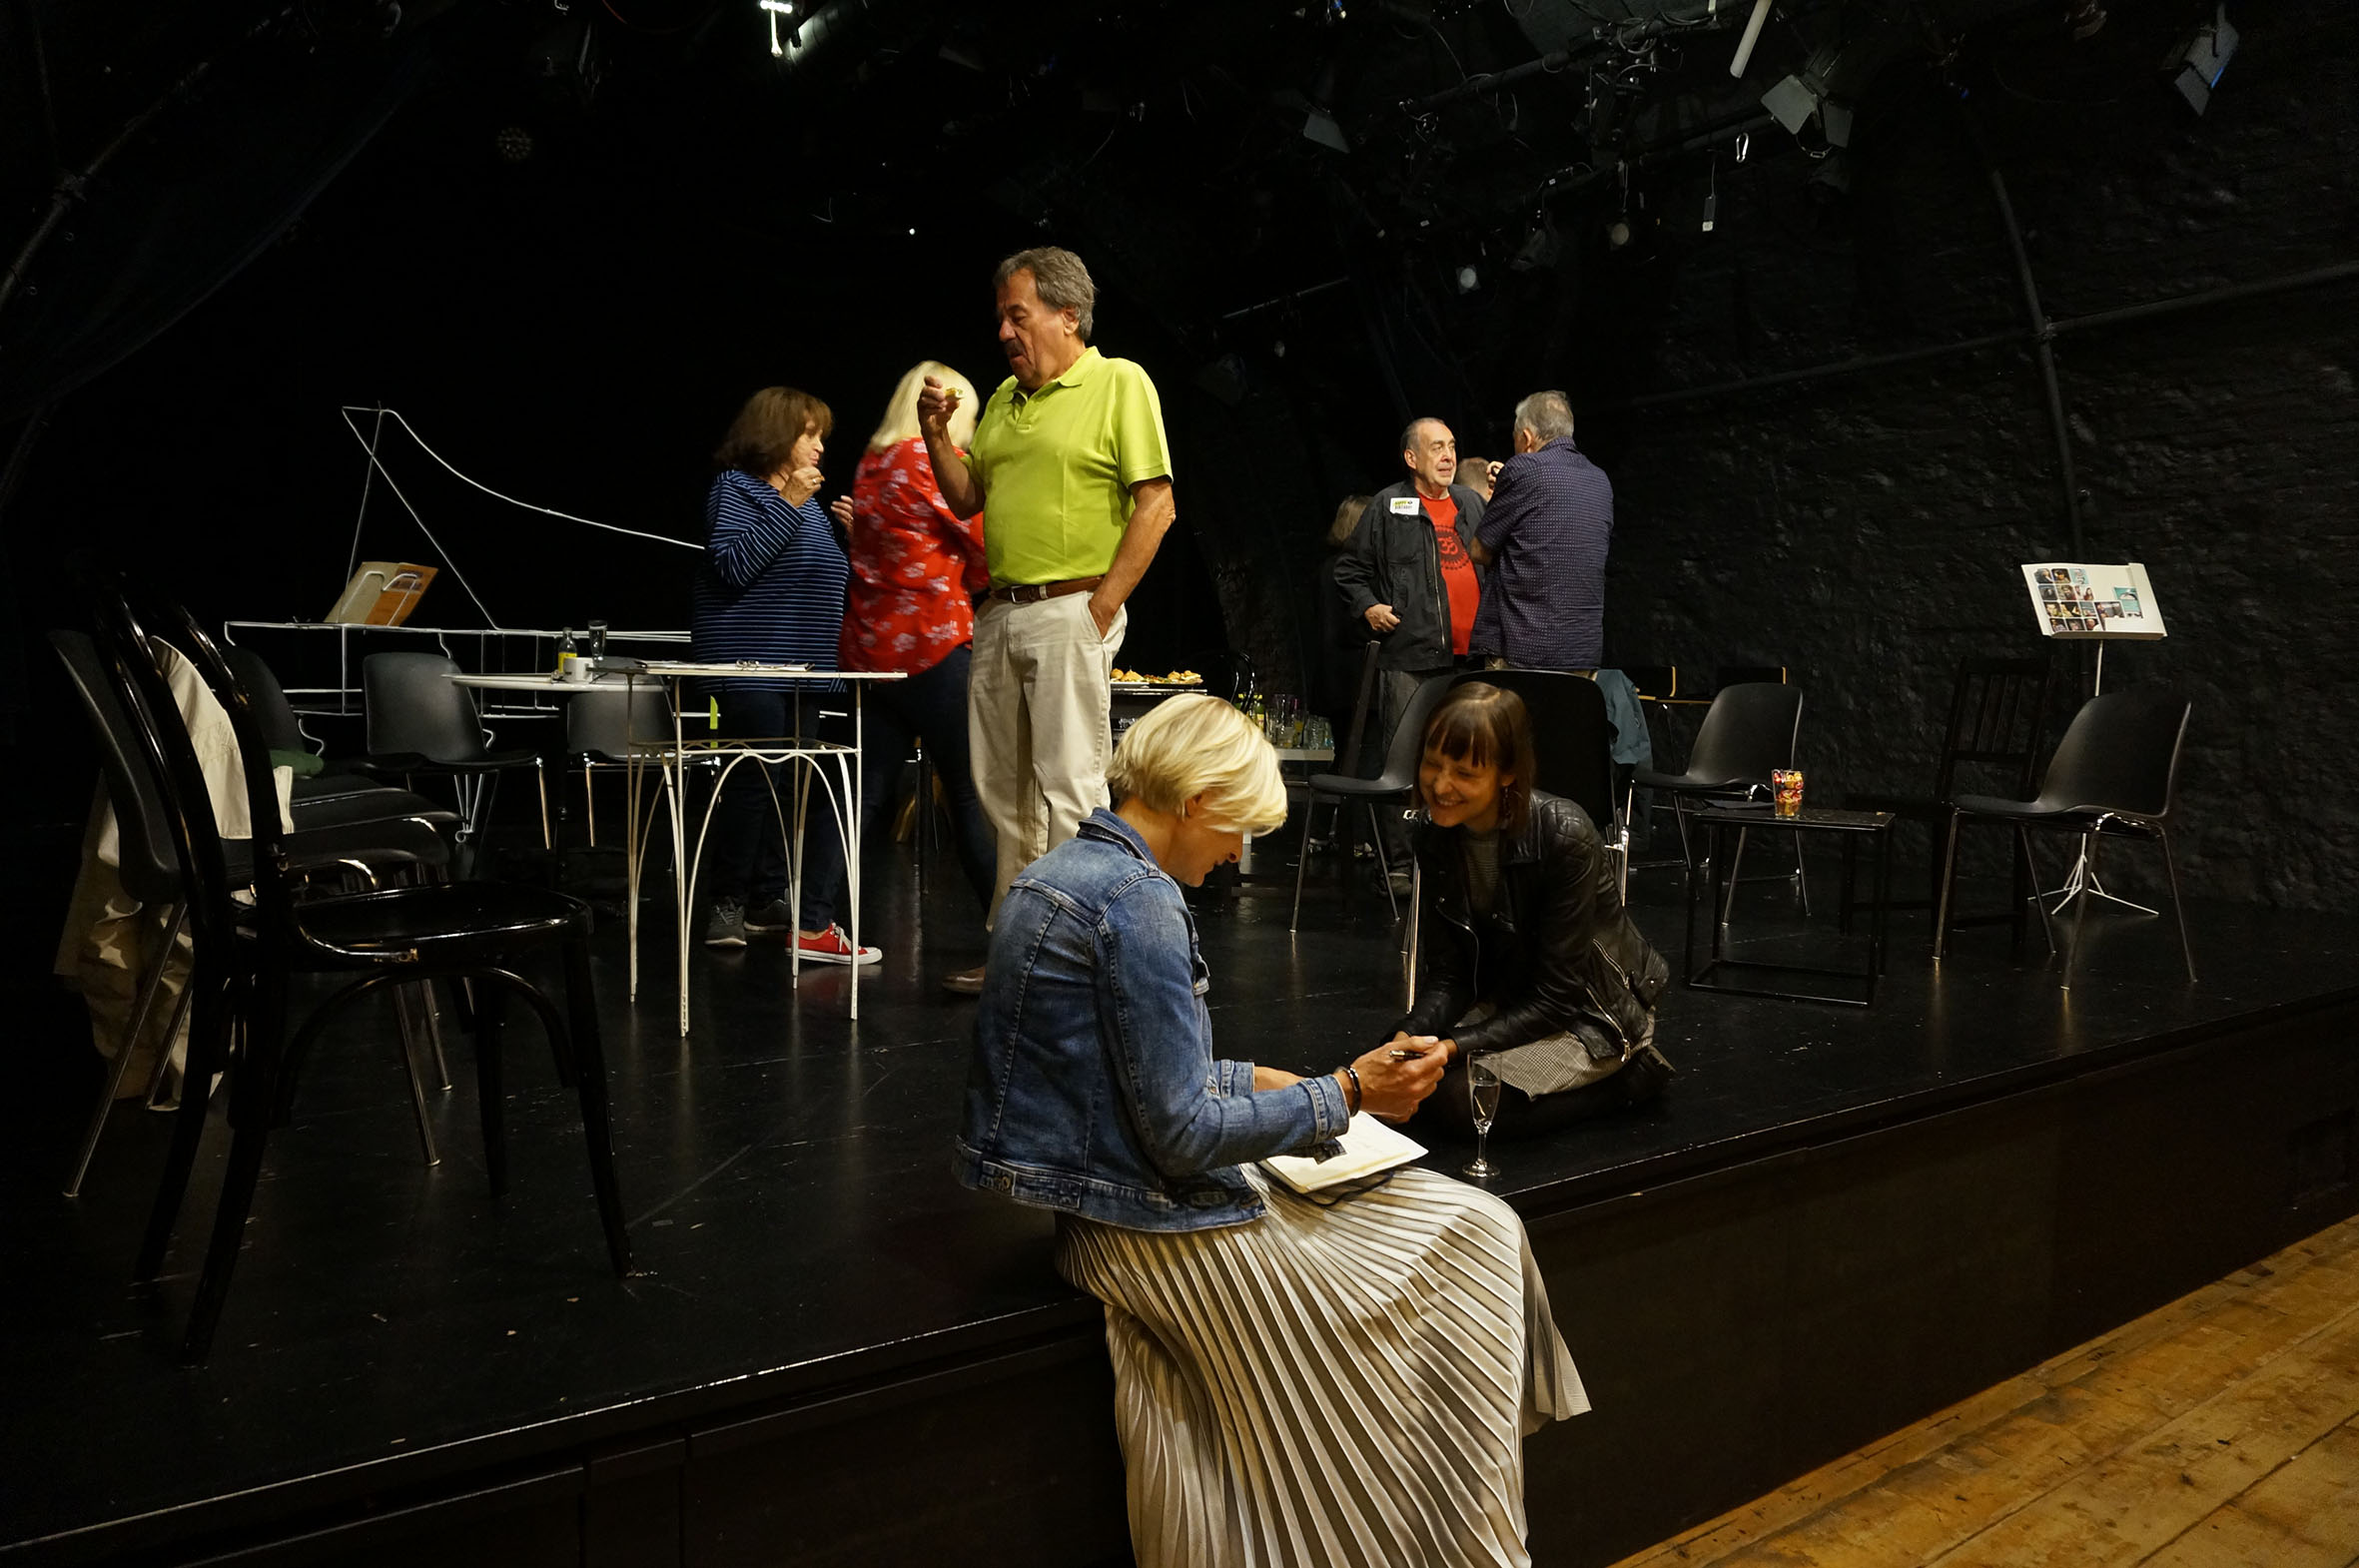 PK 09 19 04 - Pressetext kleines theater, 17. September 2019